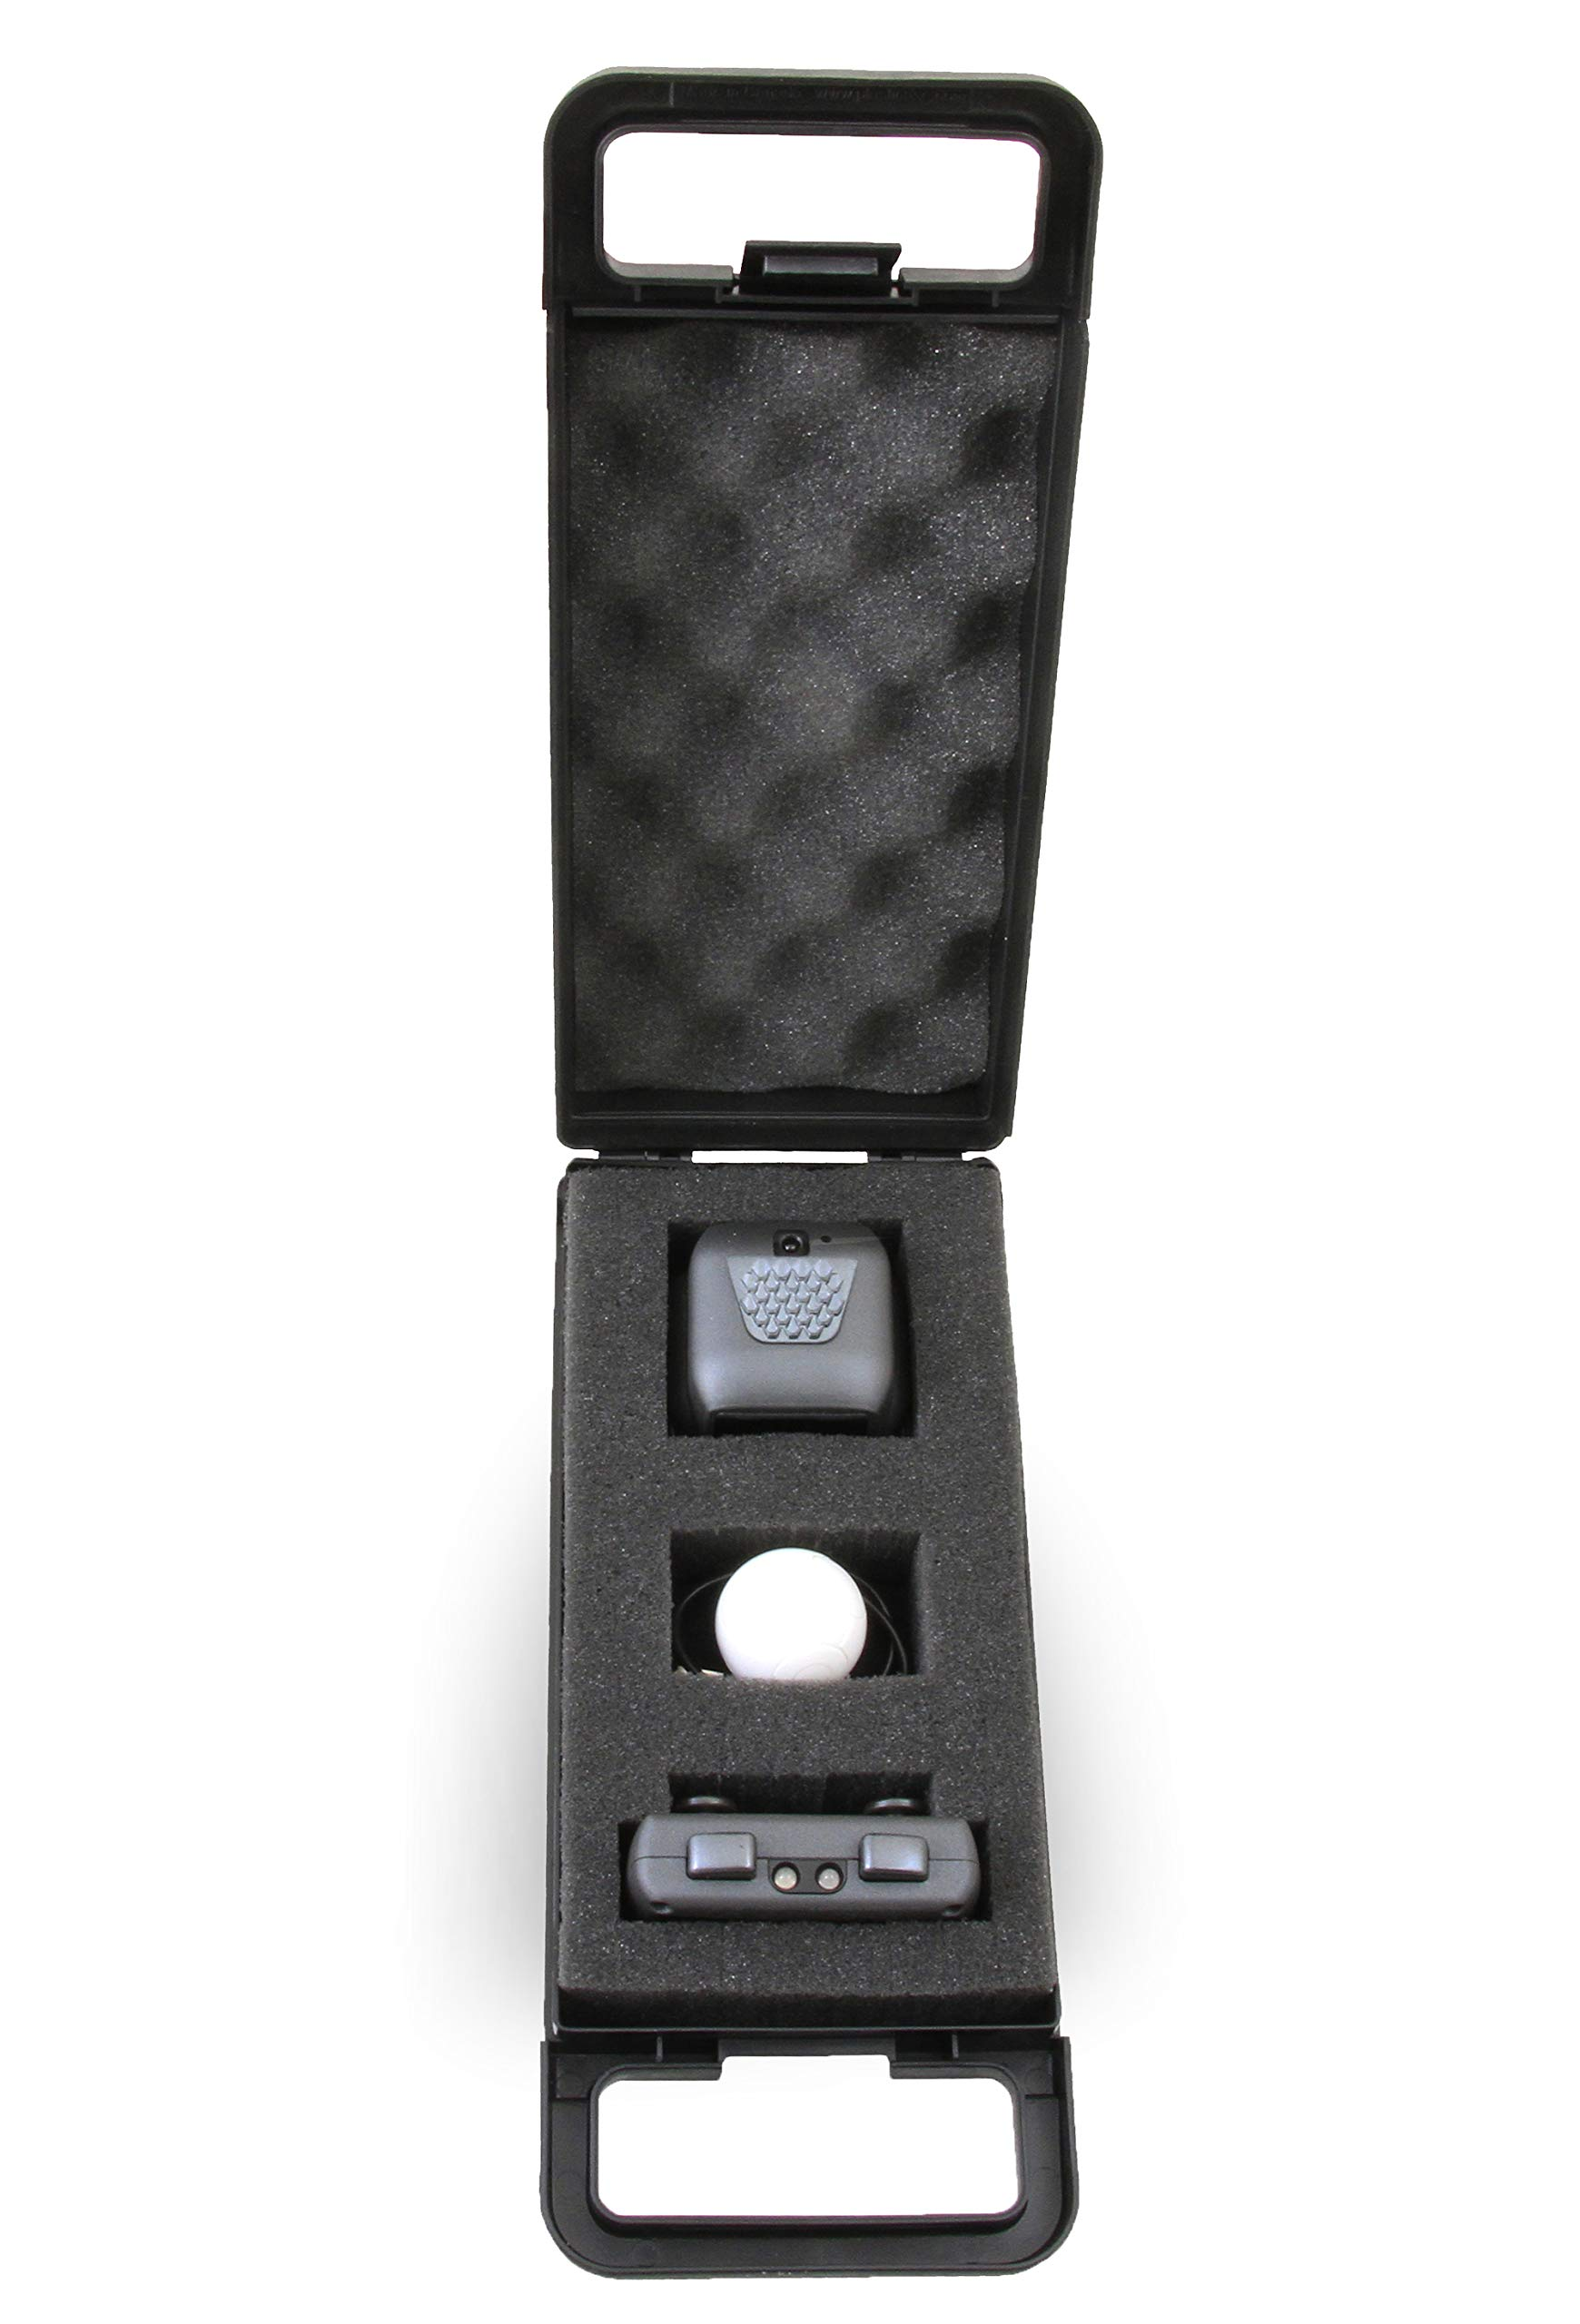 CASEMATIX Carry Case Fits Boxer A.I. Robot Toy Mini Interactive W/ Personality and Emotions - Fits Boxer AI Robot , Controller , Charger and Accessories - Includes CASE ONLY